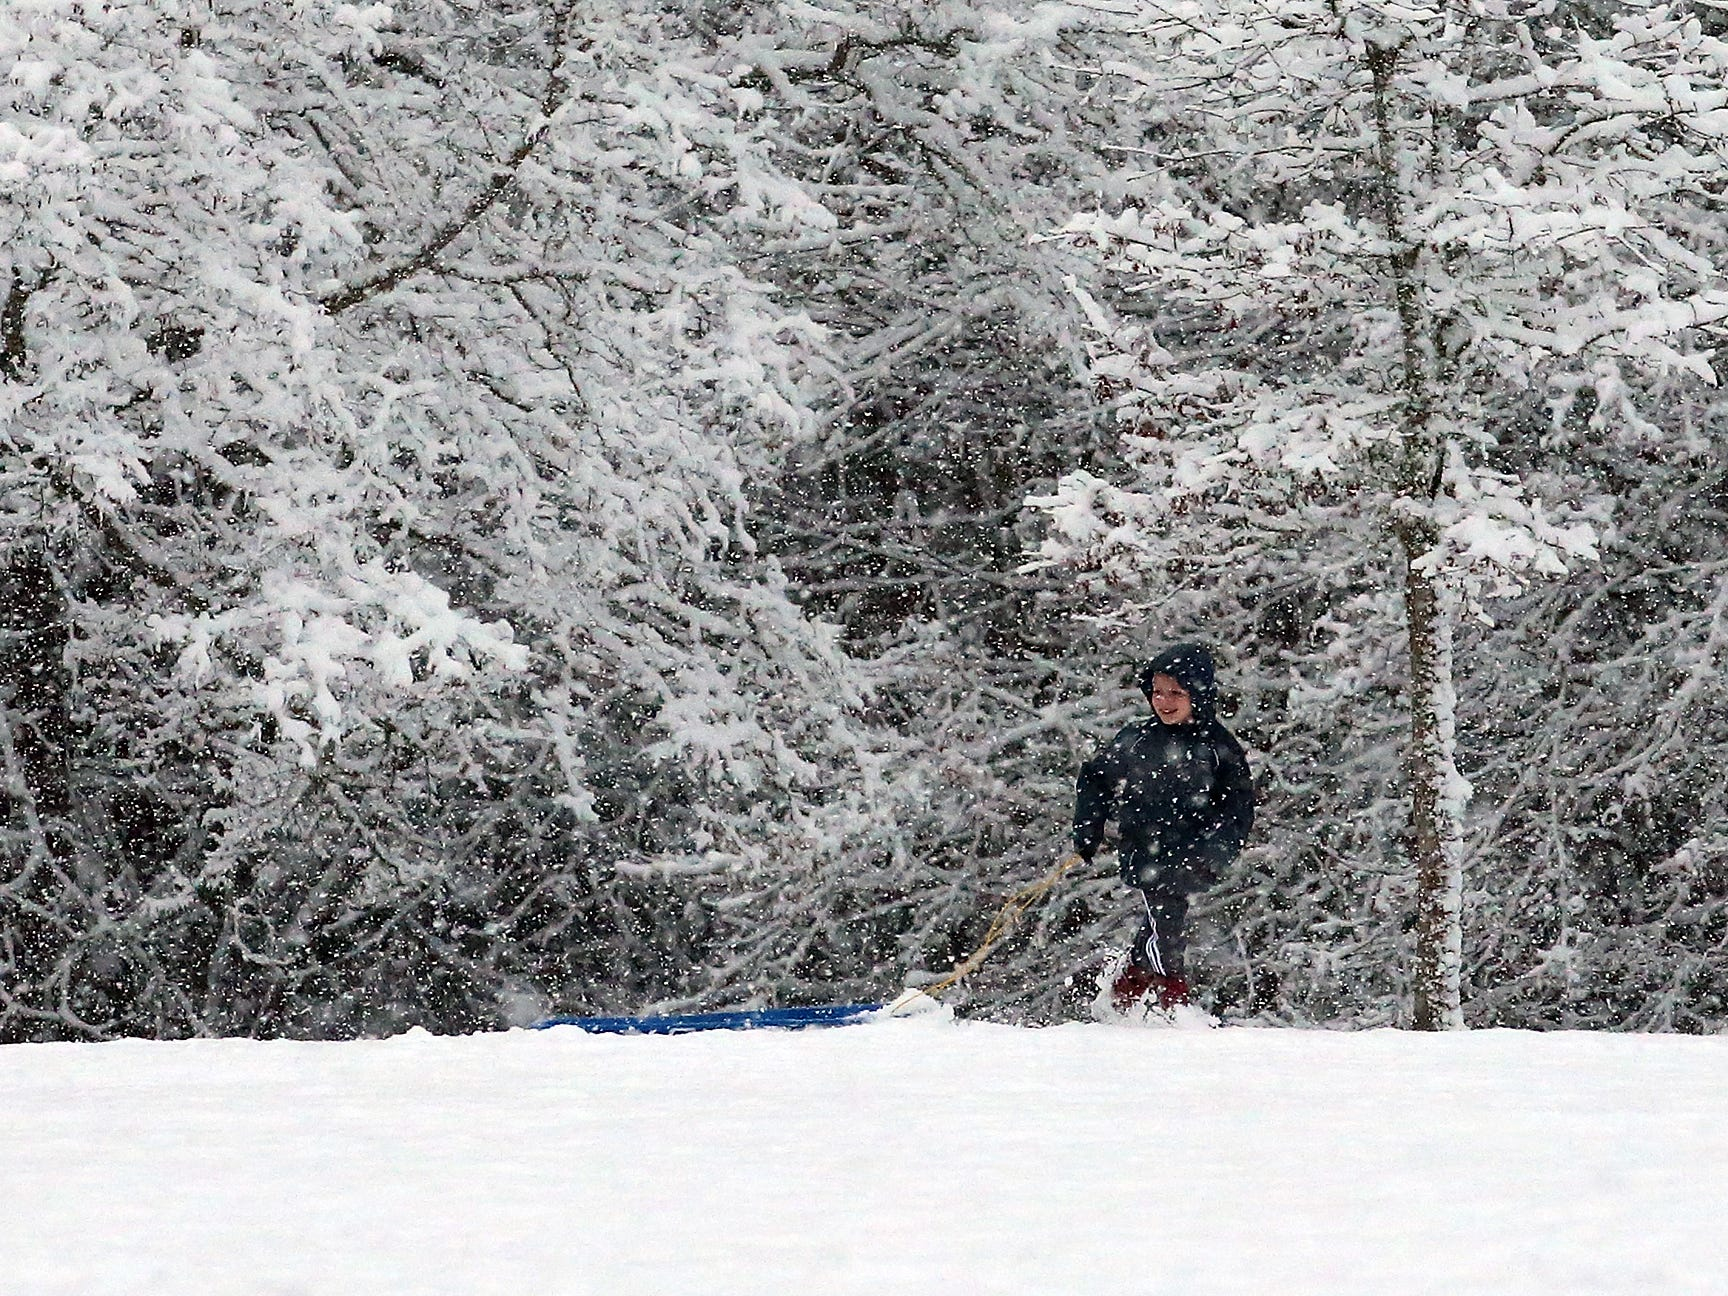 Marcus Stephan, 6, pulls his sled through the snow at Raab Park in Poulsbo on Sunday, February 3, 2019.